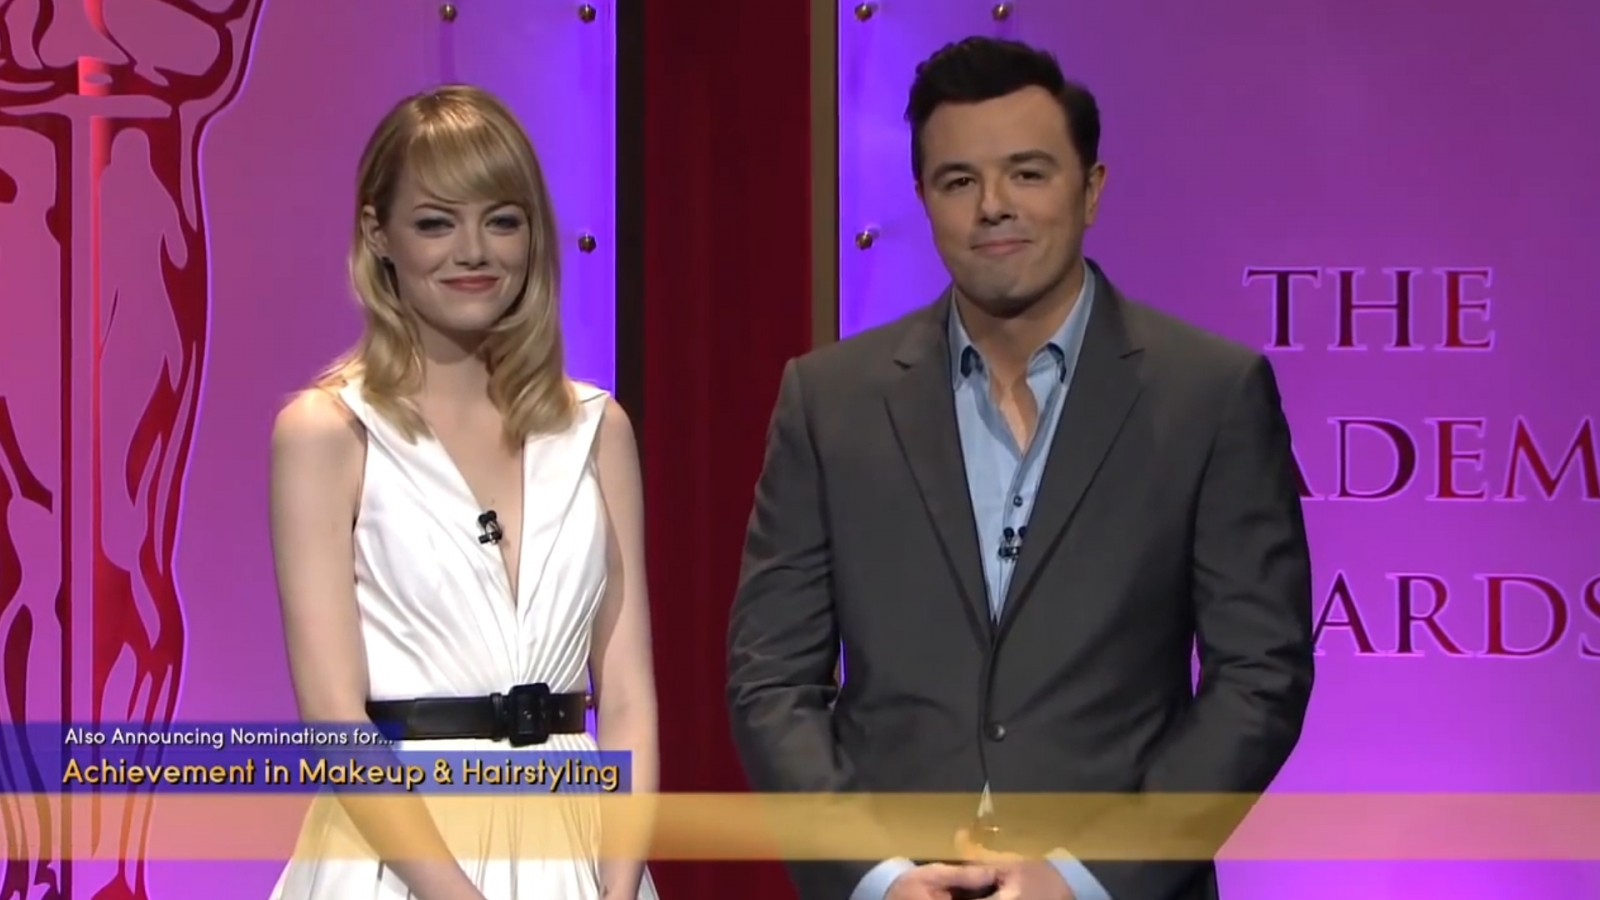 Watch Seth MacFarlane's joke about Harvey Weinstein from the 2013 Oscars announcements